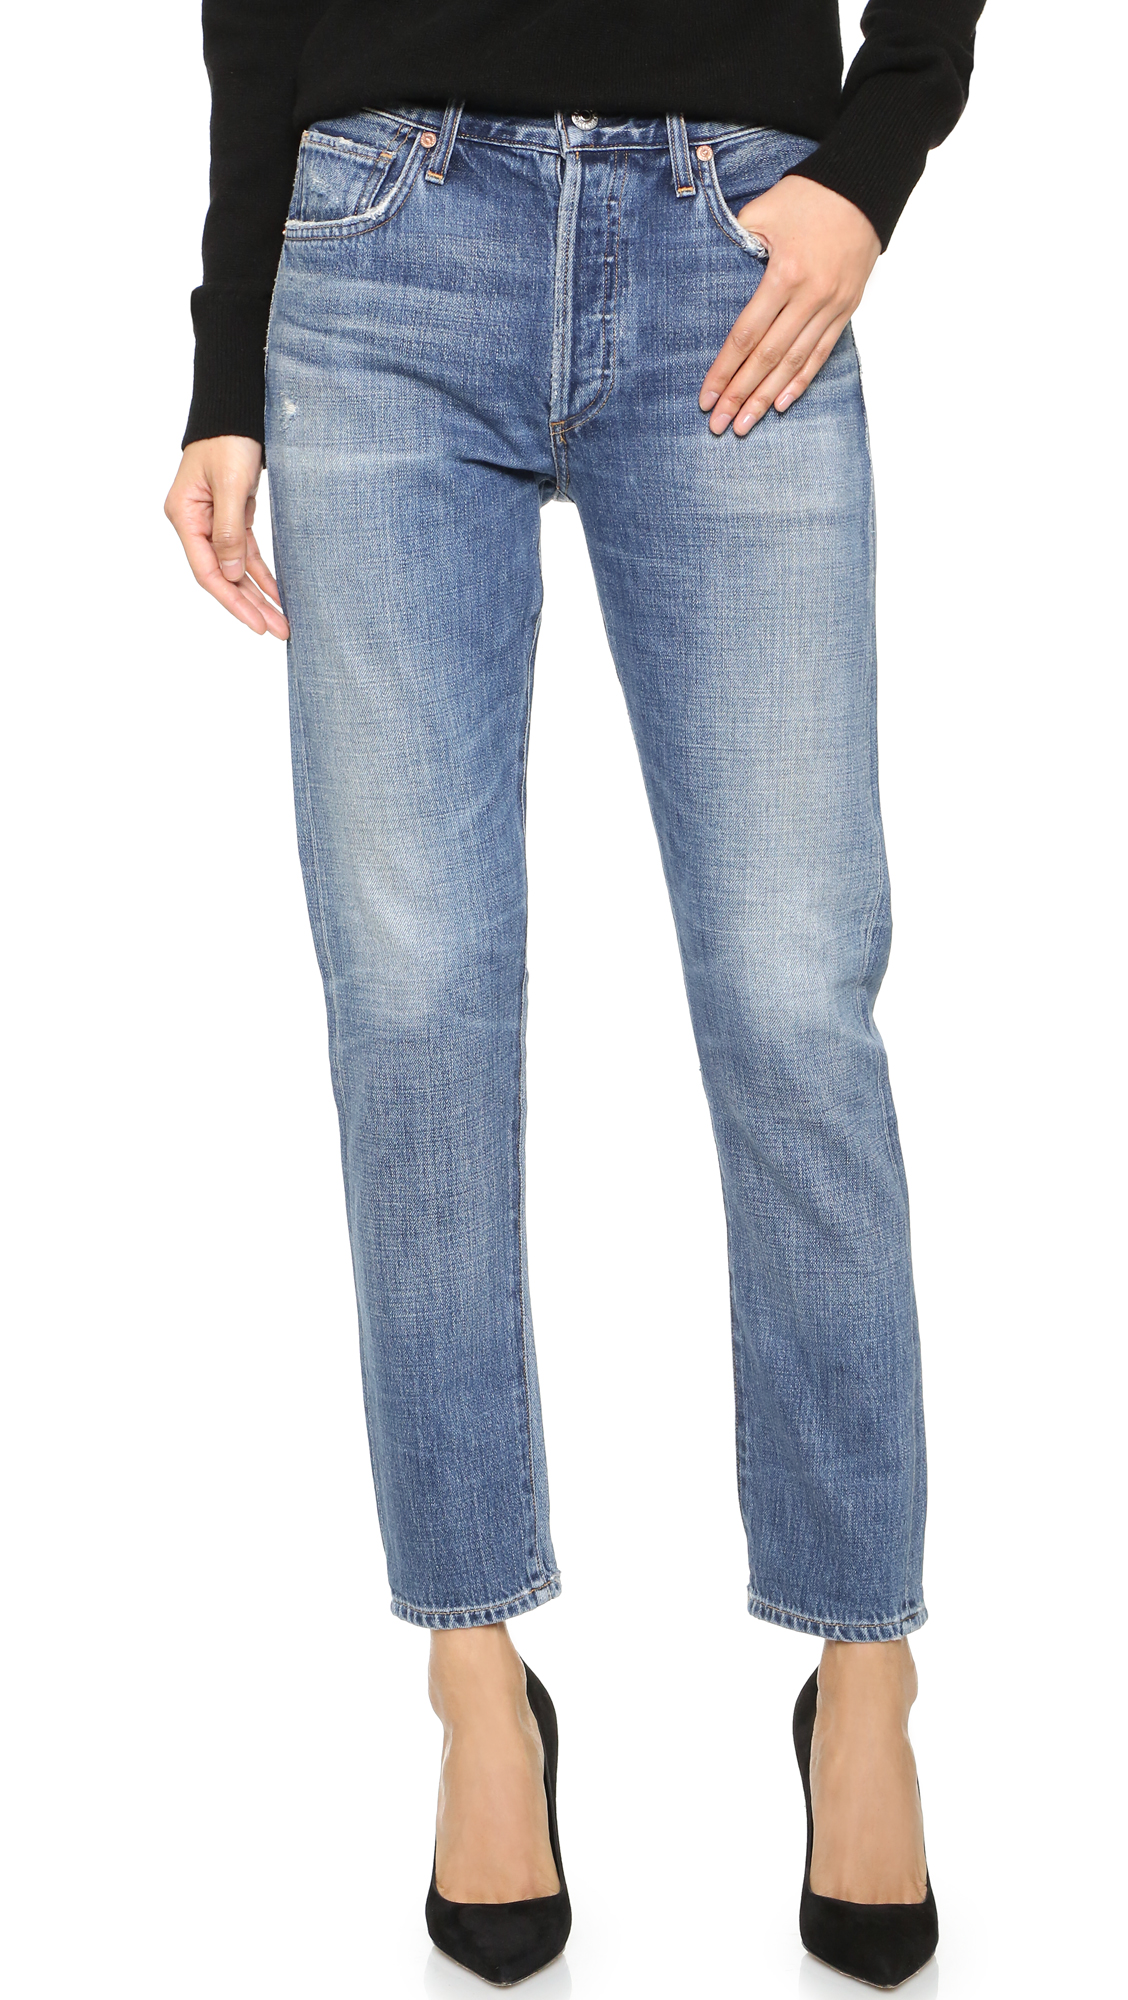 Citizens Of Humanity Liya High Rise Jeans - Fade Out at Shopbop